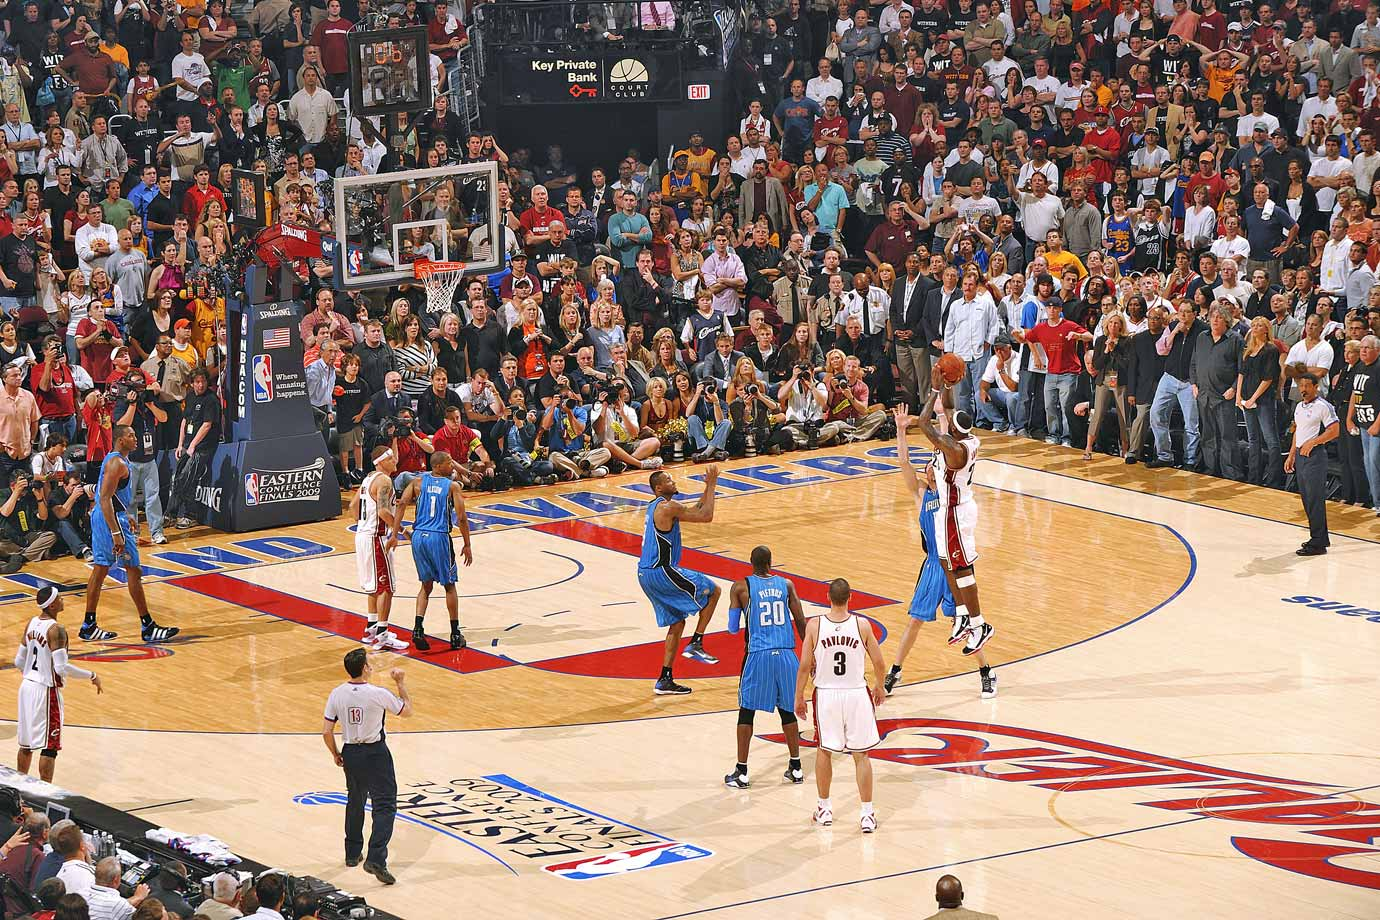 This game will be remembered for having the signature shot of LeBron James' career: a buzzer-beating, game-winning three-pointer to punctuate his 35-point effort and even the series at 1-1 as the Cavs defeated the Magic 96-95.